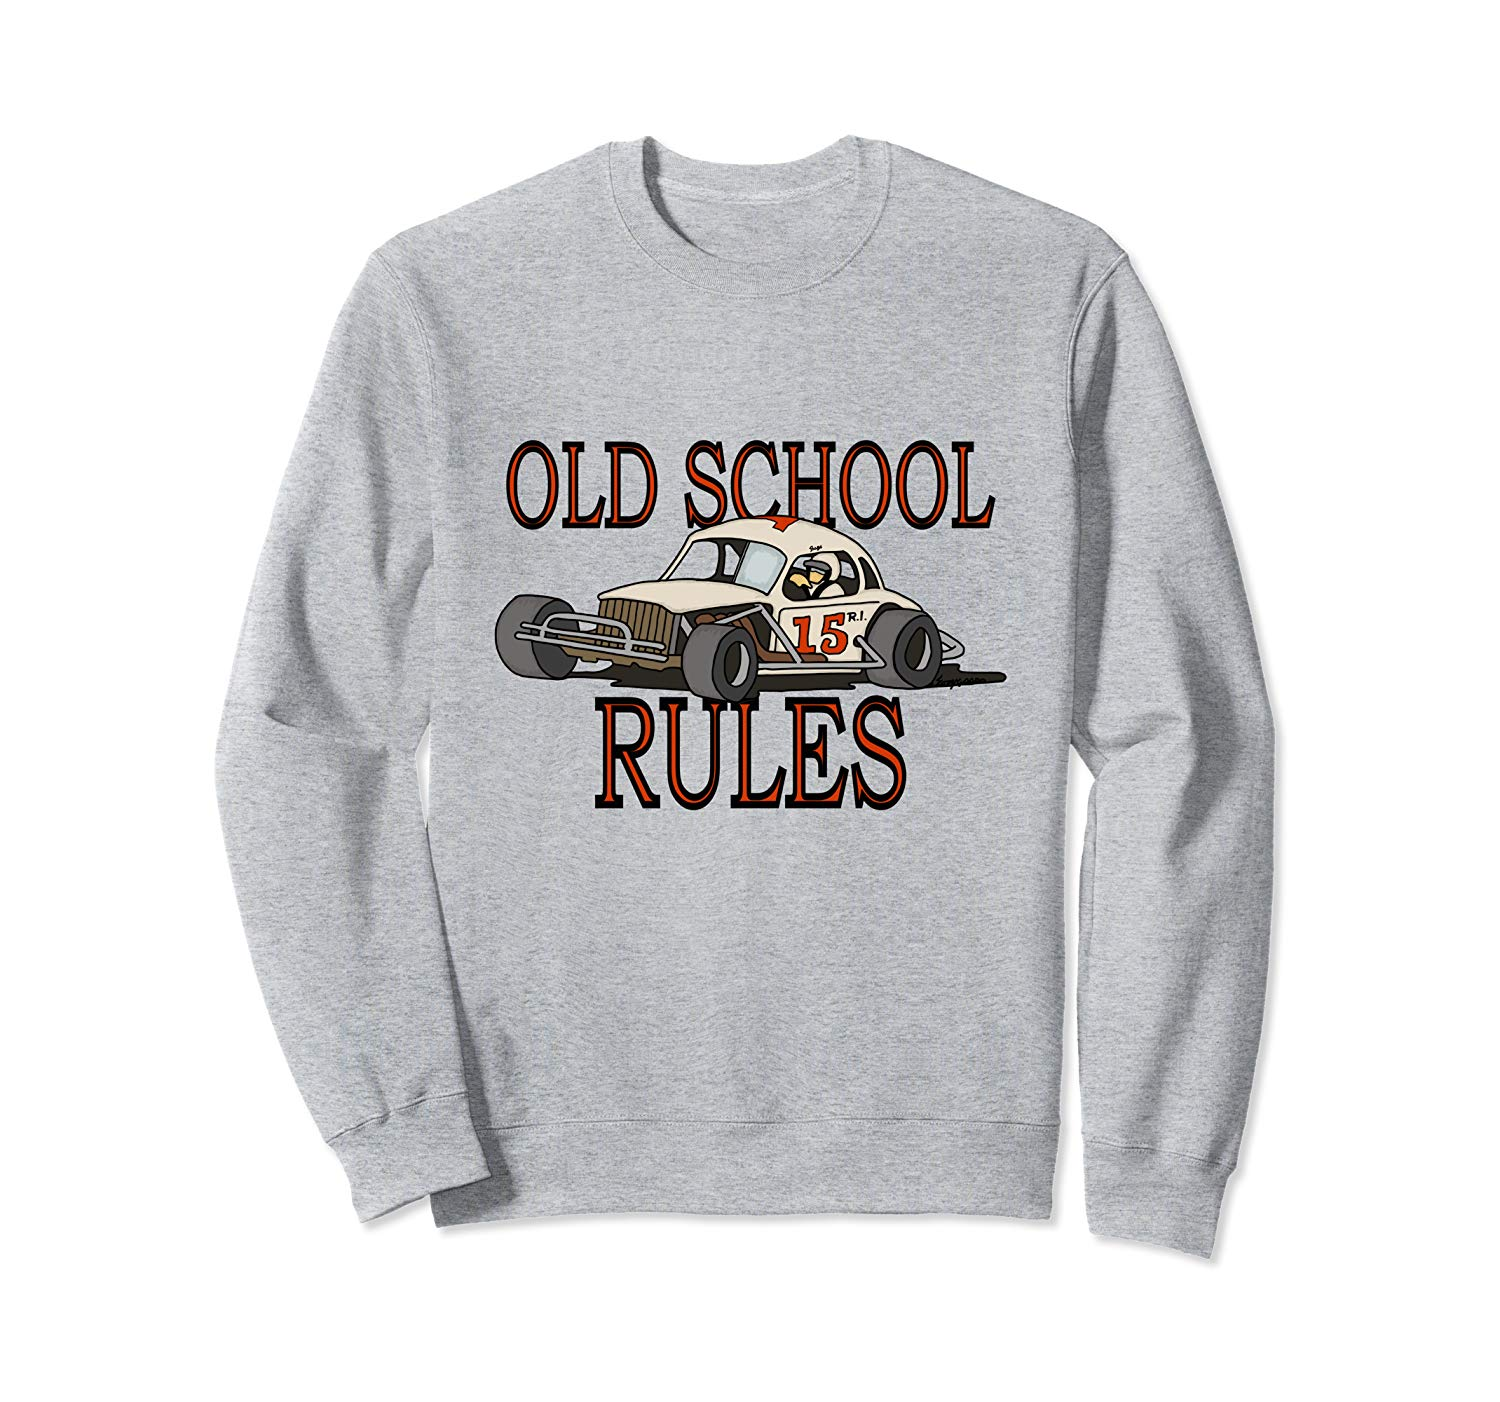 Stock Car Shirt OLD SCHOOL RULES White coupe racing gift sweatshirt